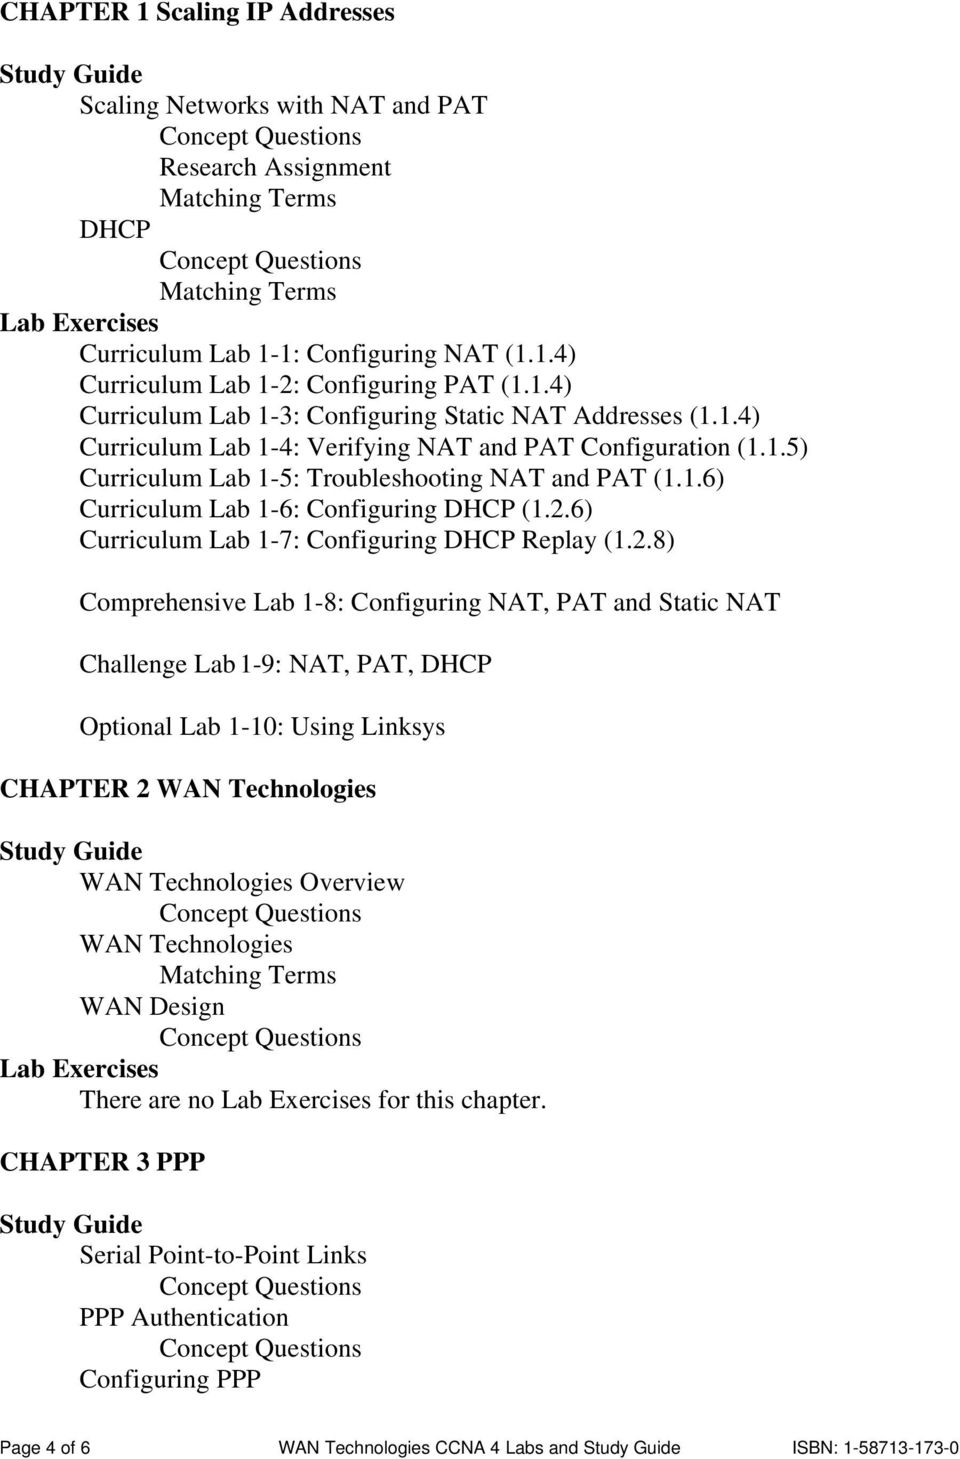 2.6) Curriculum Lab 1-7: Configuring DHCP Replay (1.2.8)